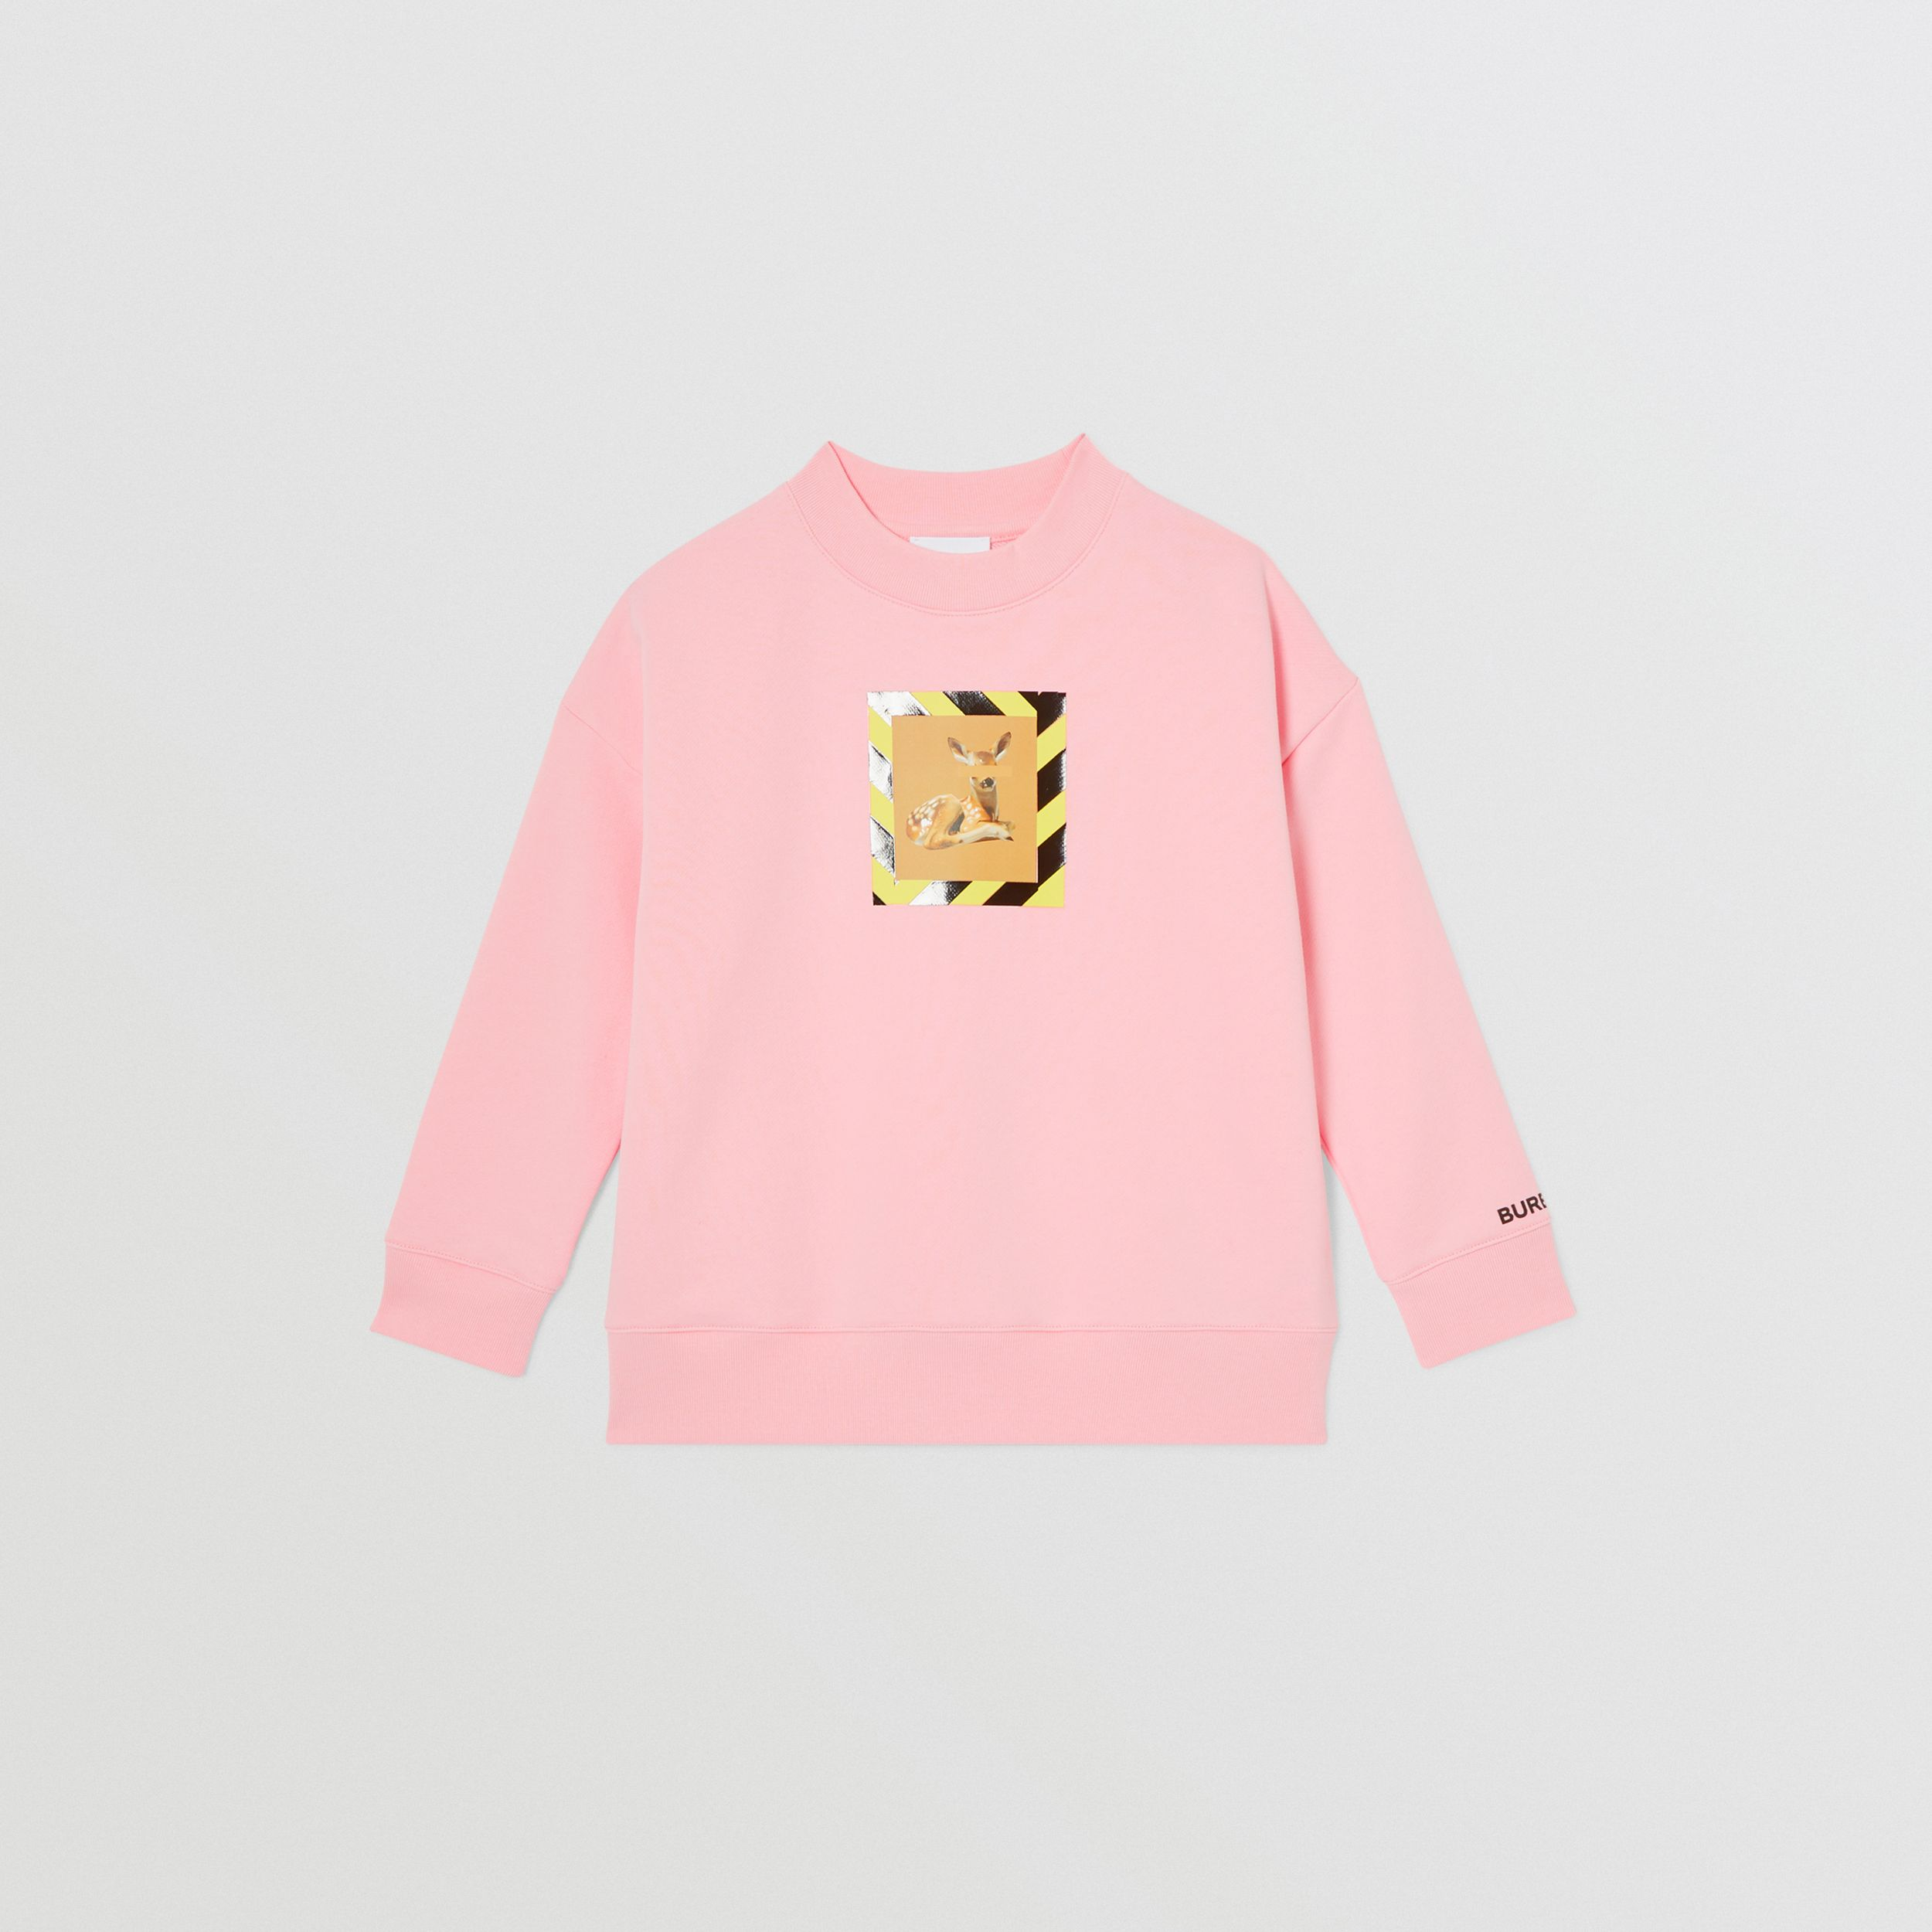 Deer Print Cotton Sweatshirt in Candy Pink | Burberry - 2